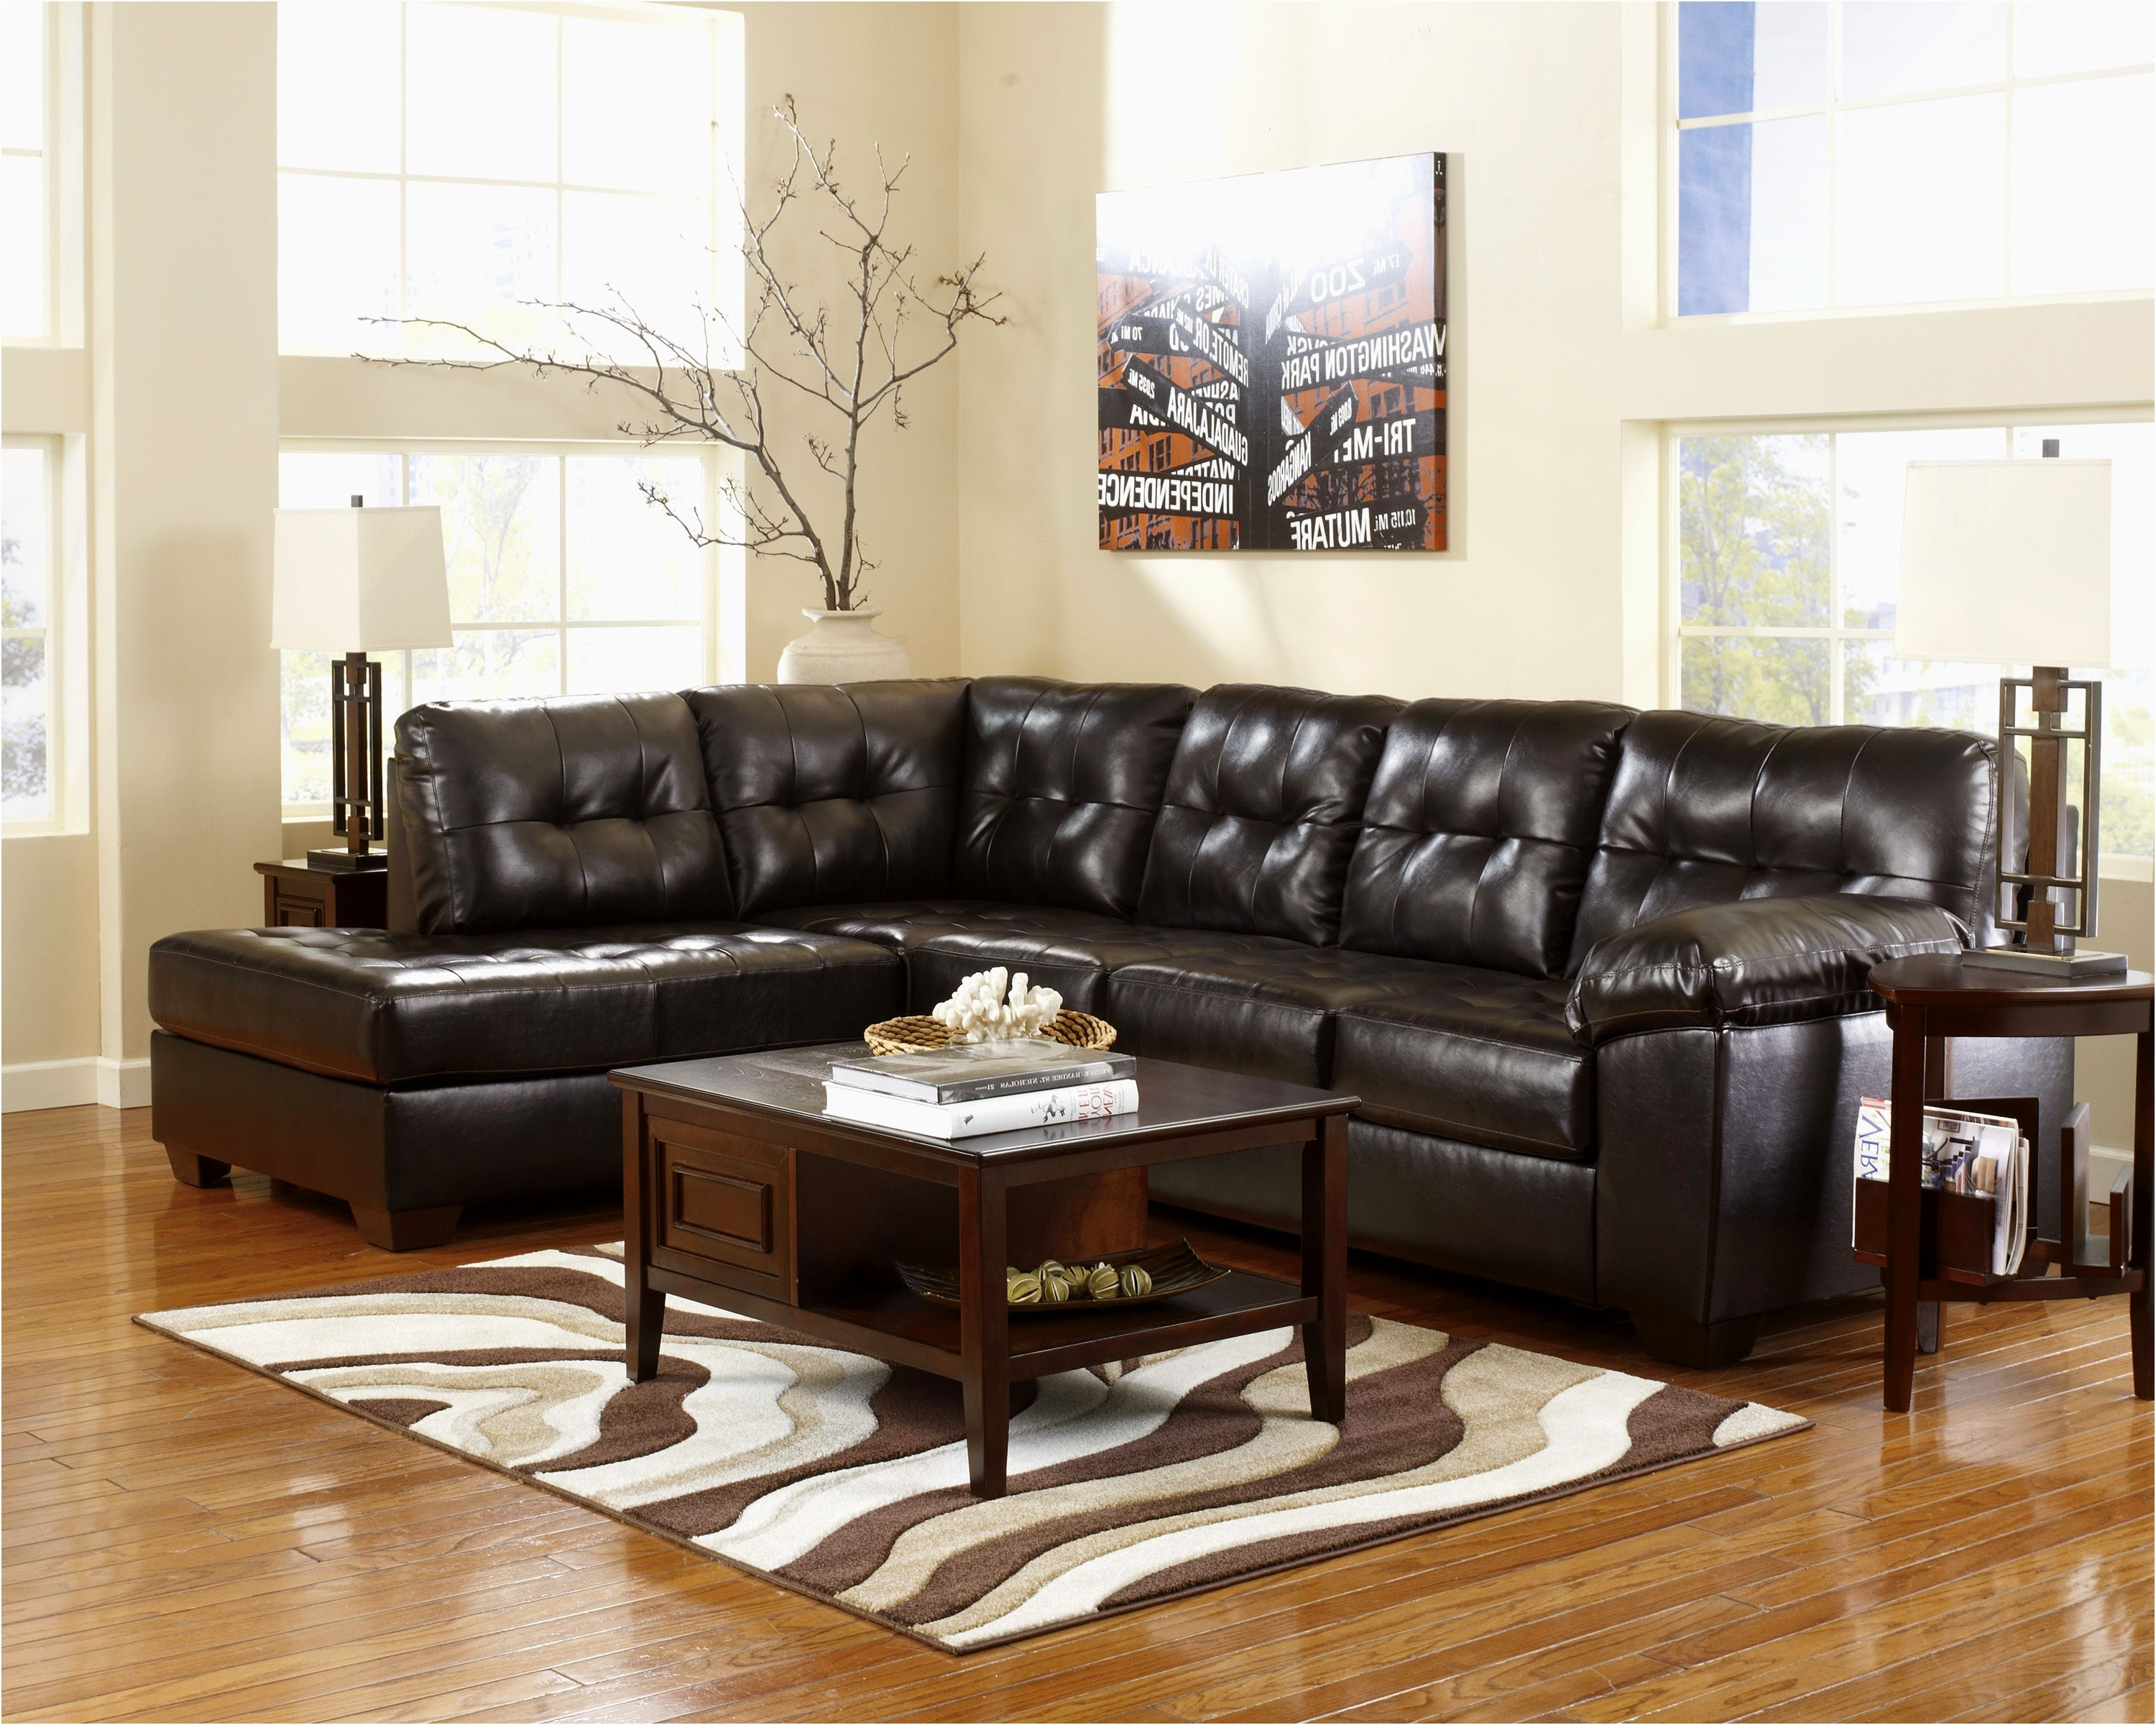 new black sectional sofa photograph-Best Black Sectional sofa Layout